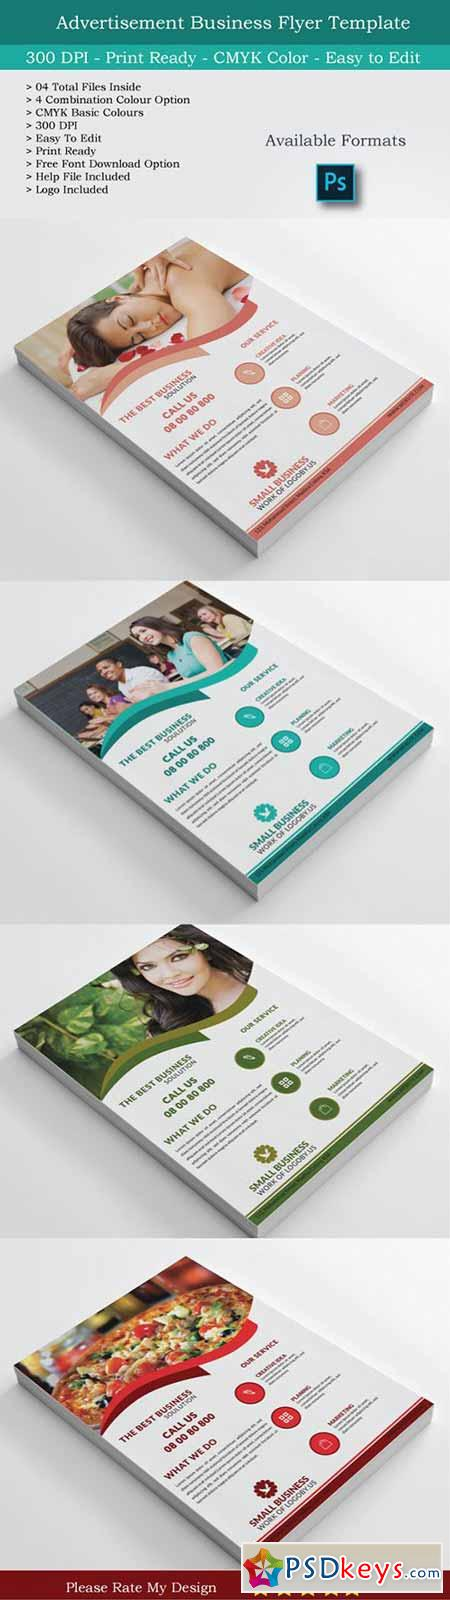 Small Business Flyer & Logo Design 489744